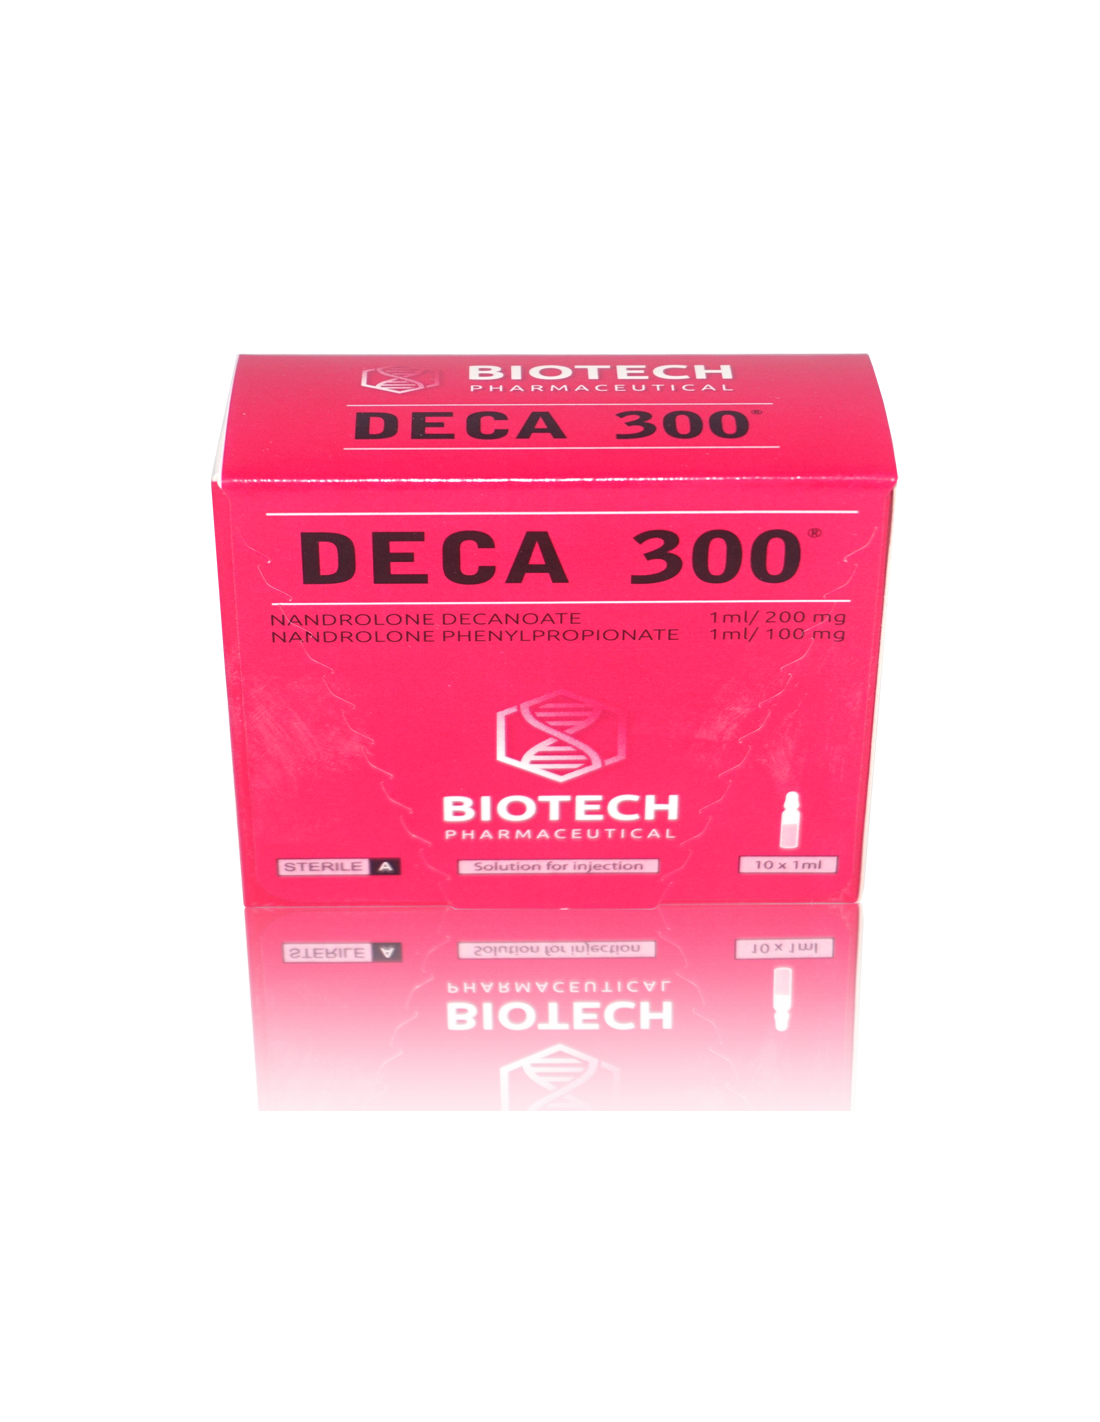 Deca 300 - Unit: 10 x 1 ml Amps(300 mg/ml)